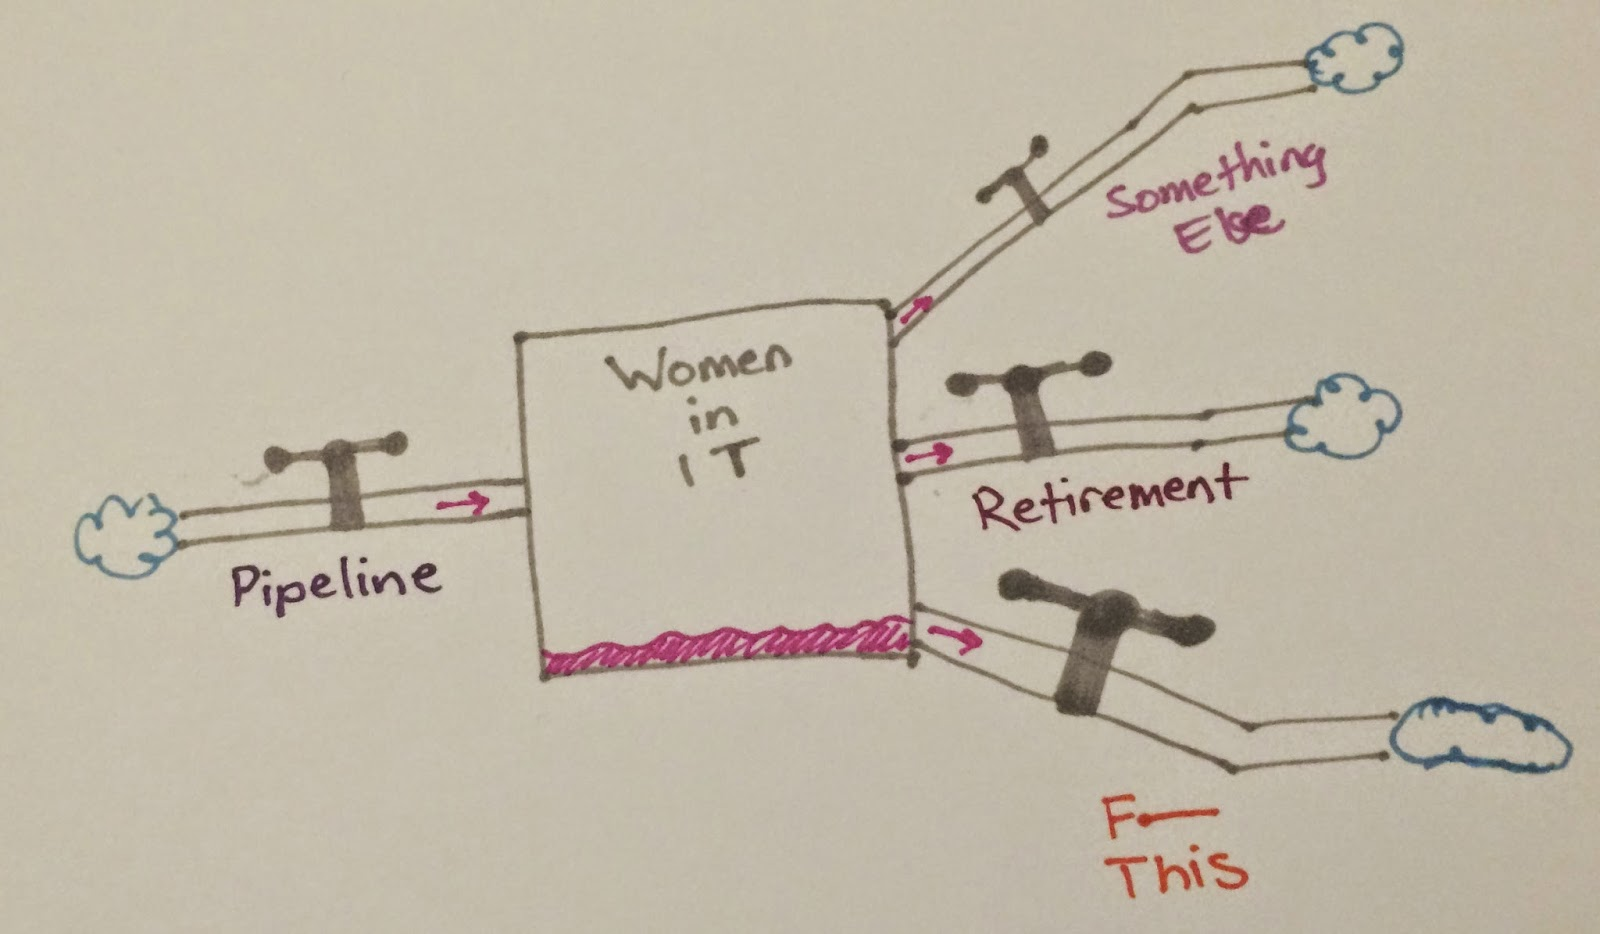 The pipeline inputs to the stock of Women in IT; three outflows are Something Else; retirement; and F This.